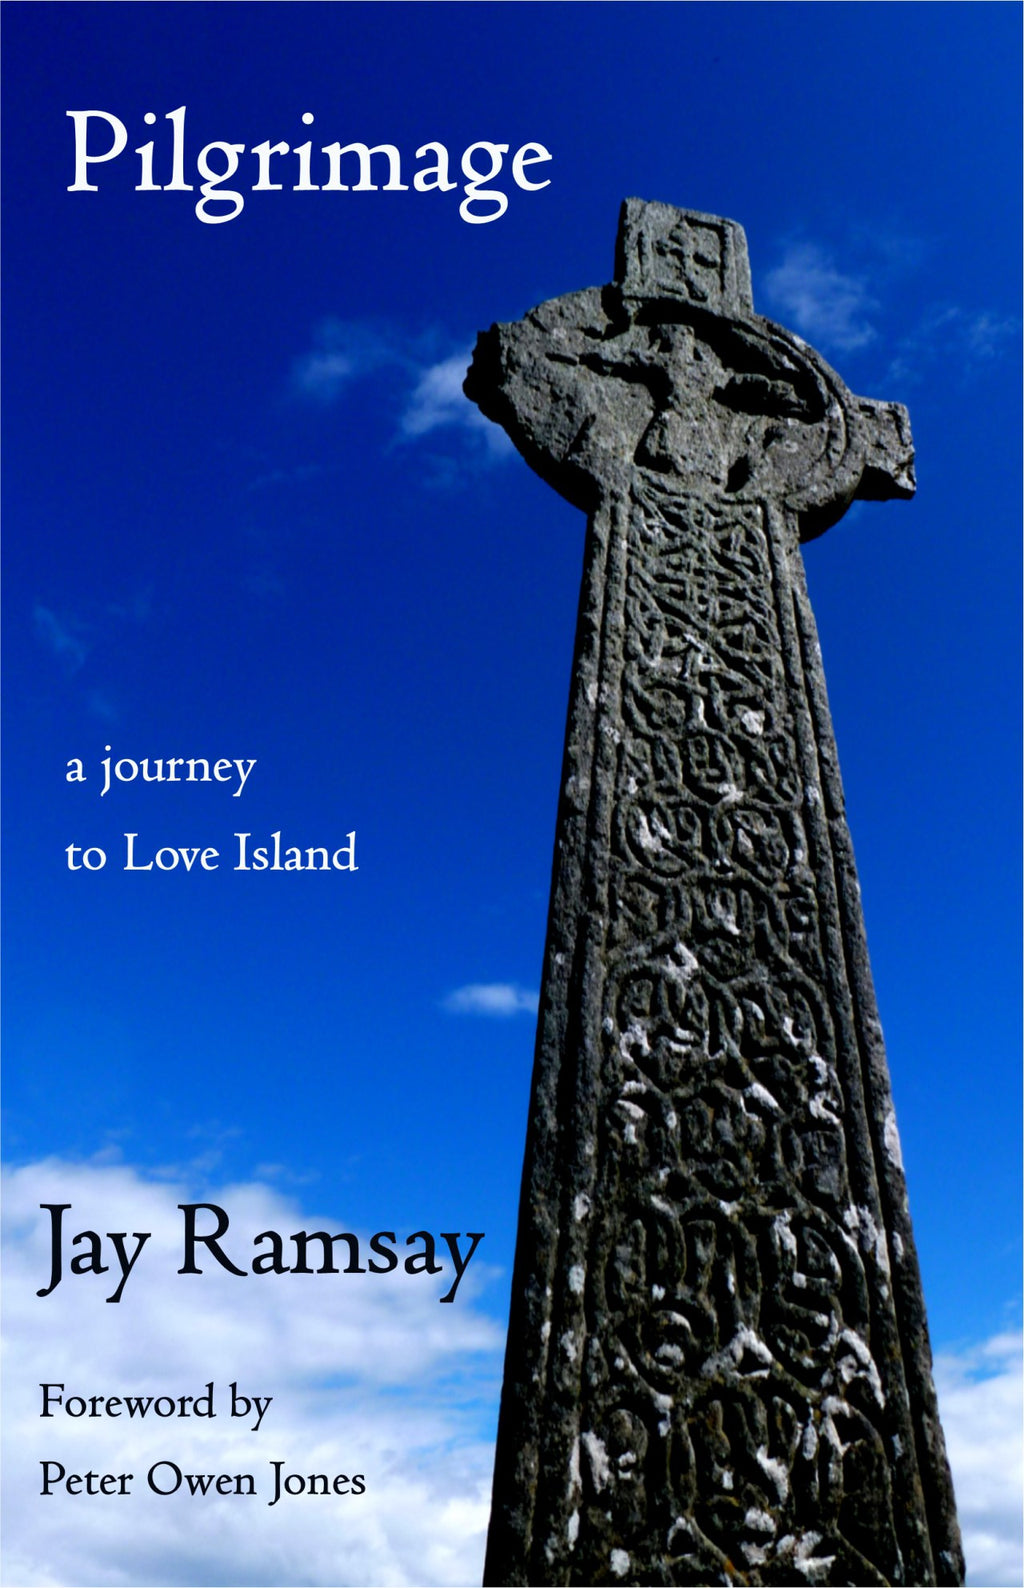 Pilgrimage: a journey to Love Island - Jay Ramsay